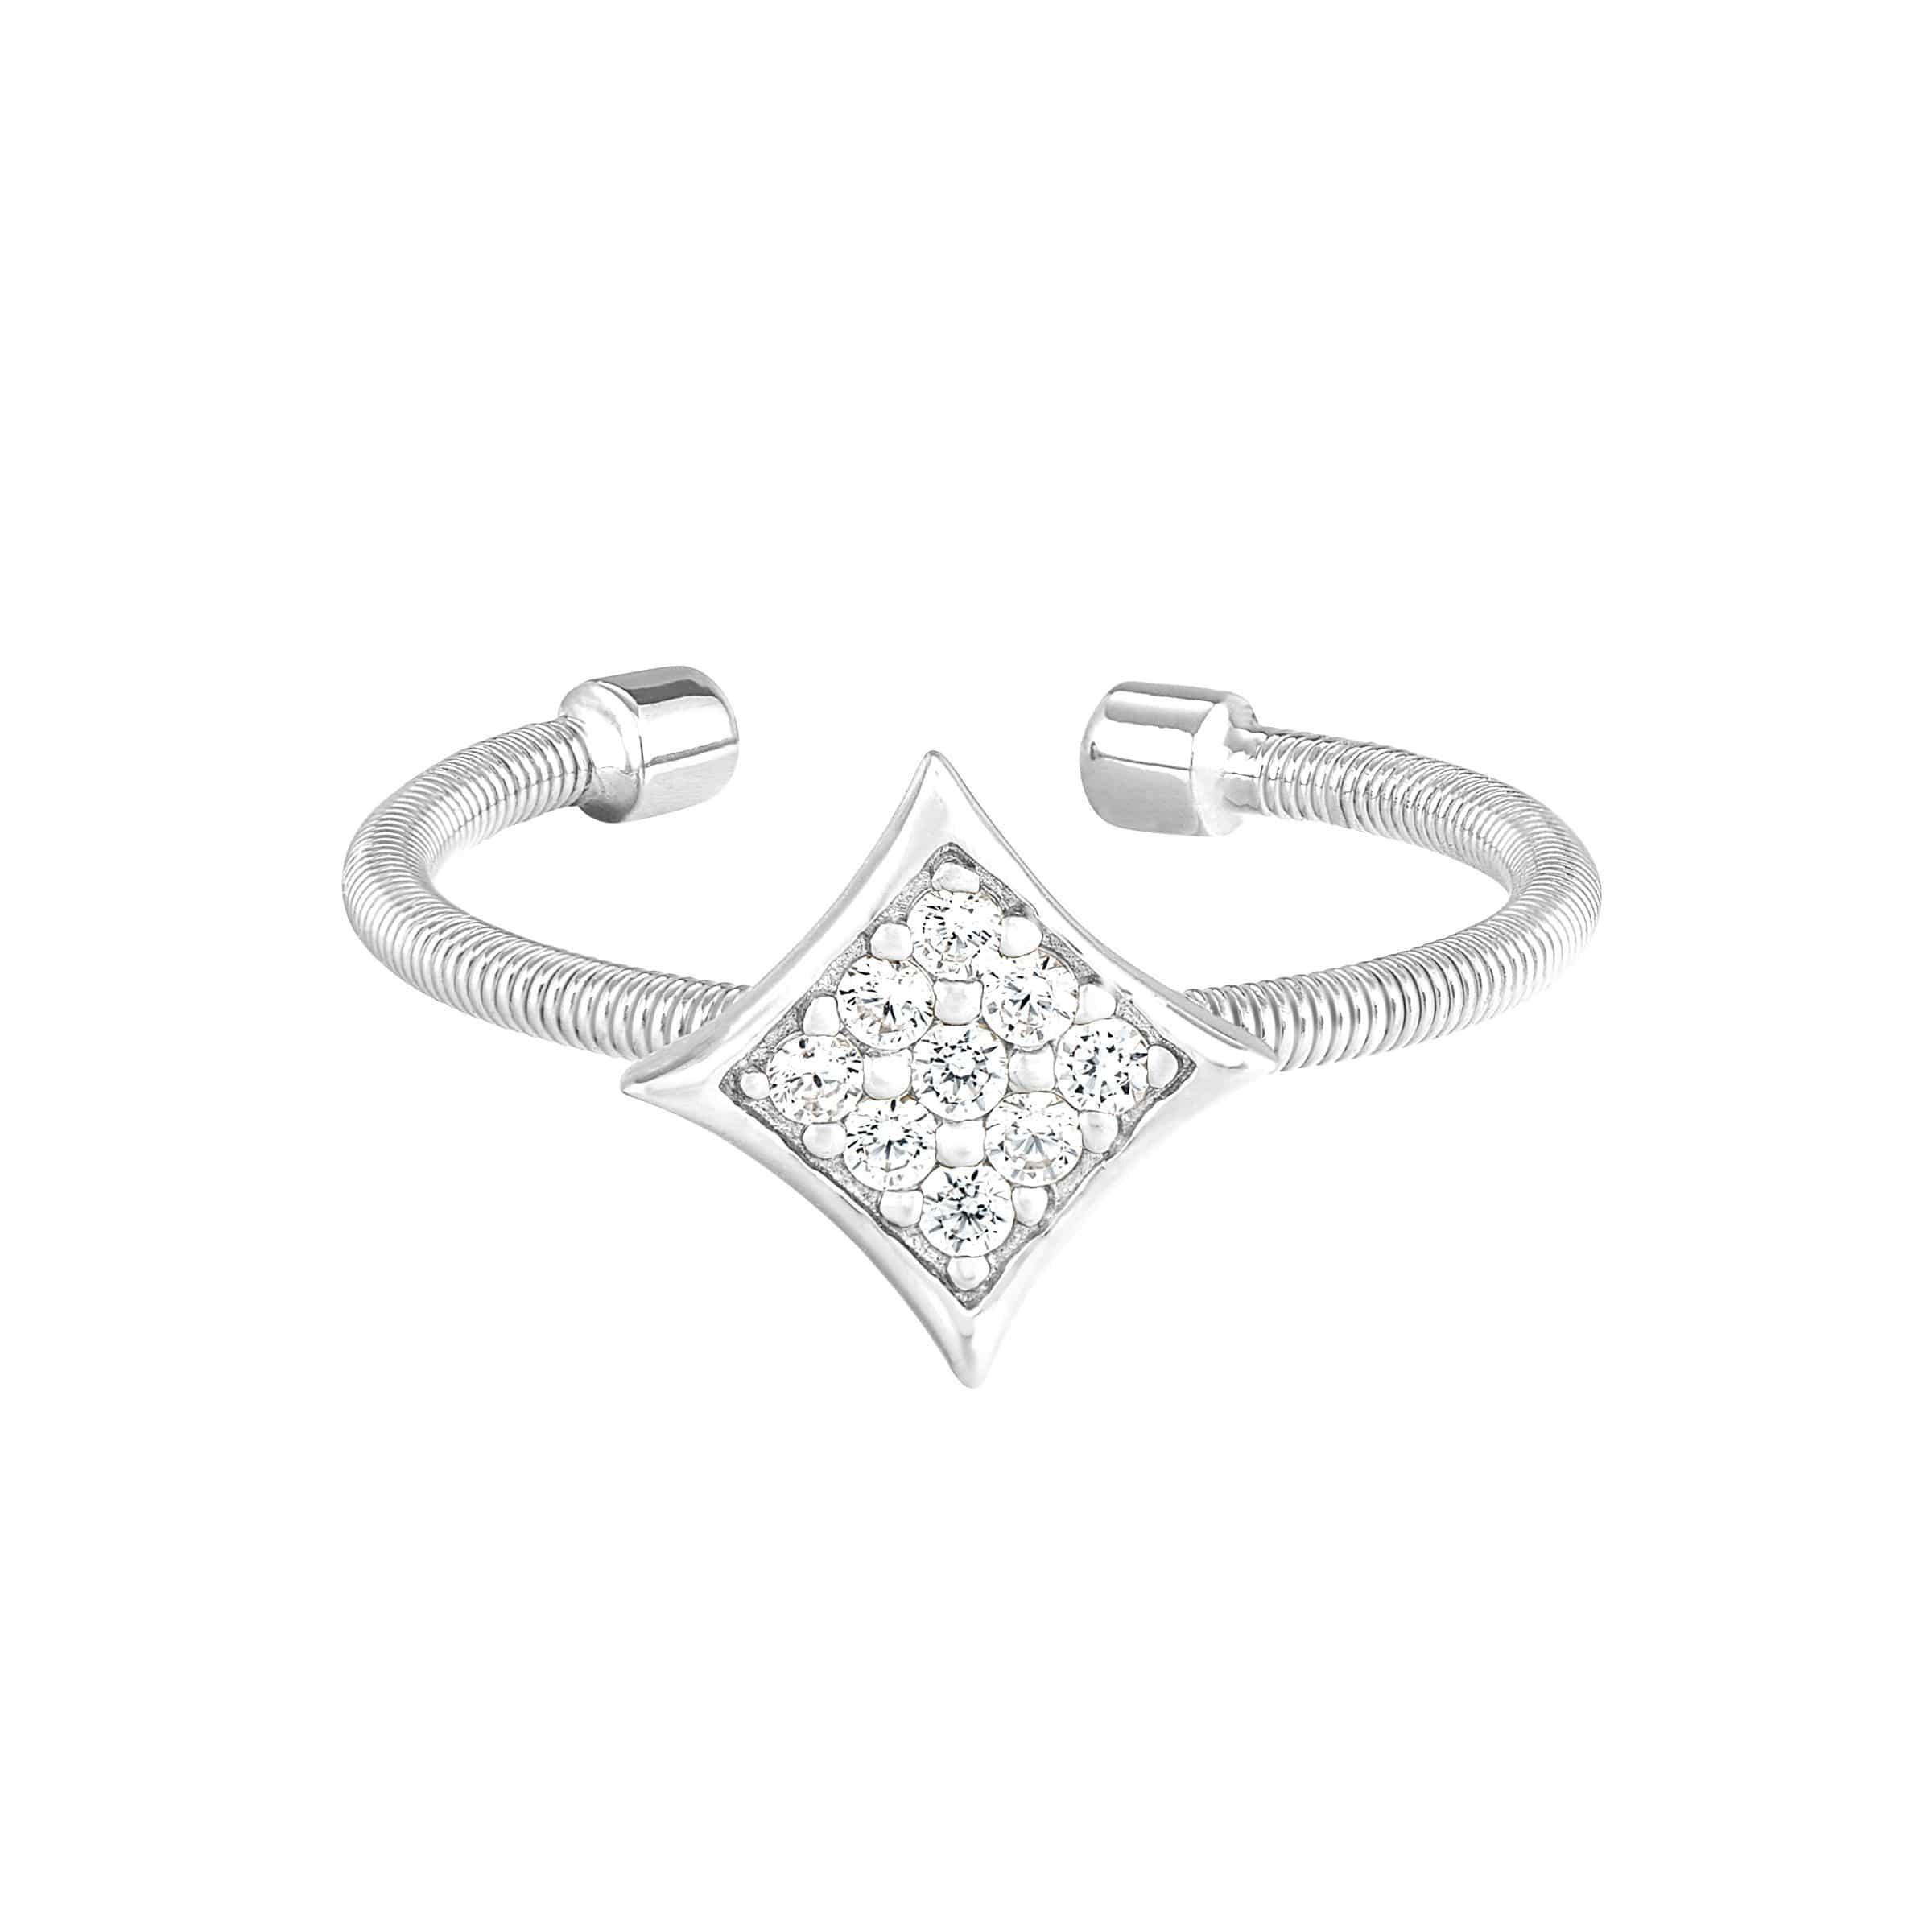 Rhodium Finish Sterling Silver Cable Cuff Diamond Shaped Ring - LL7088R-RH-5-Kelly Waters-Renee Taylor Gallery